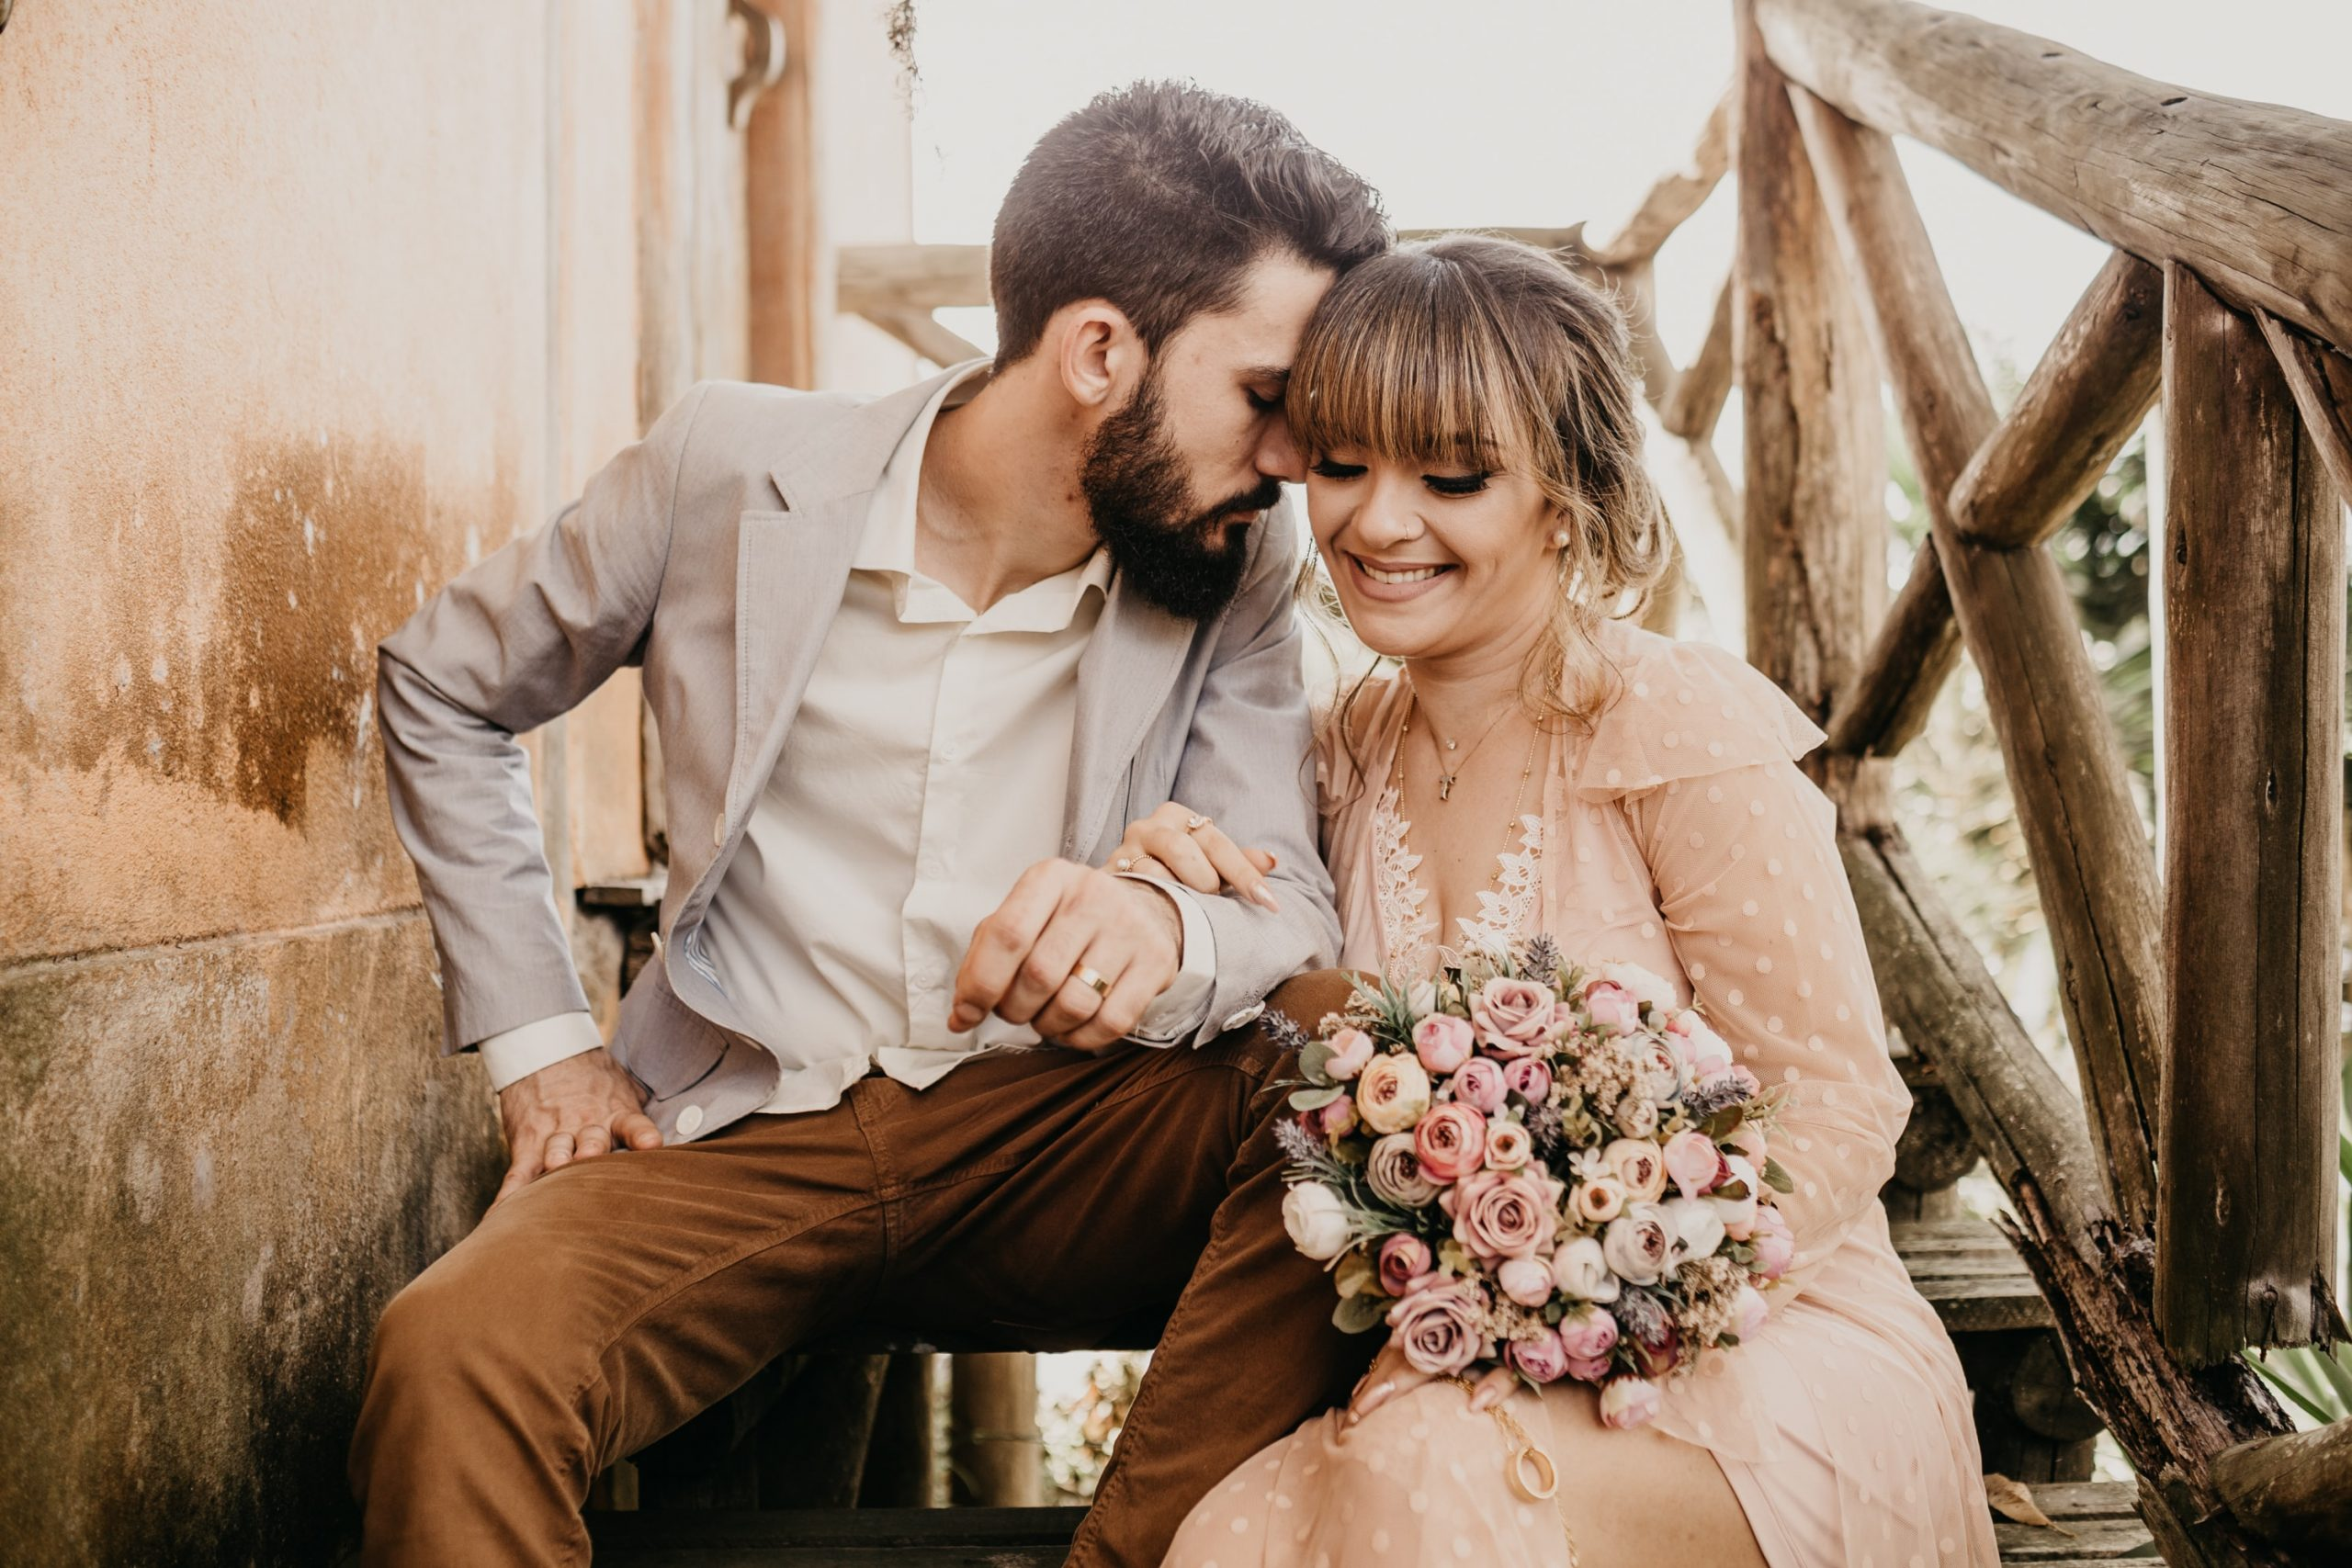 small wedding ideas on a budget bride and groom